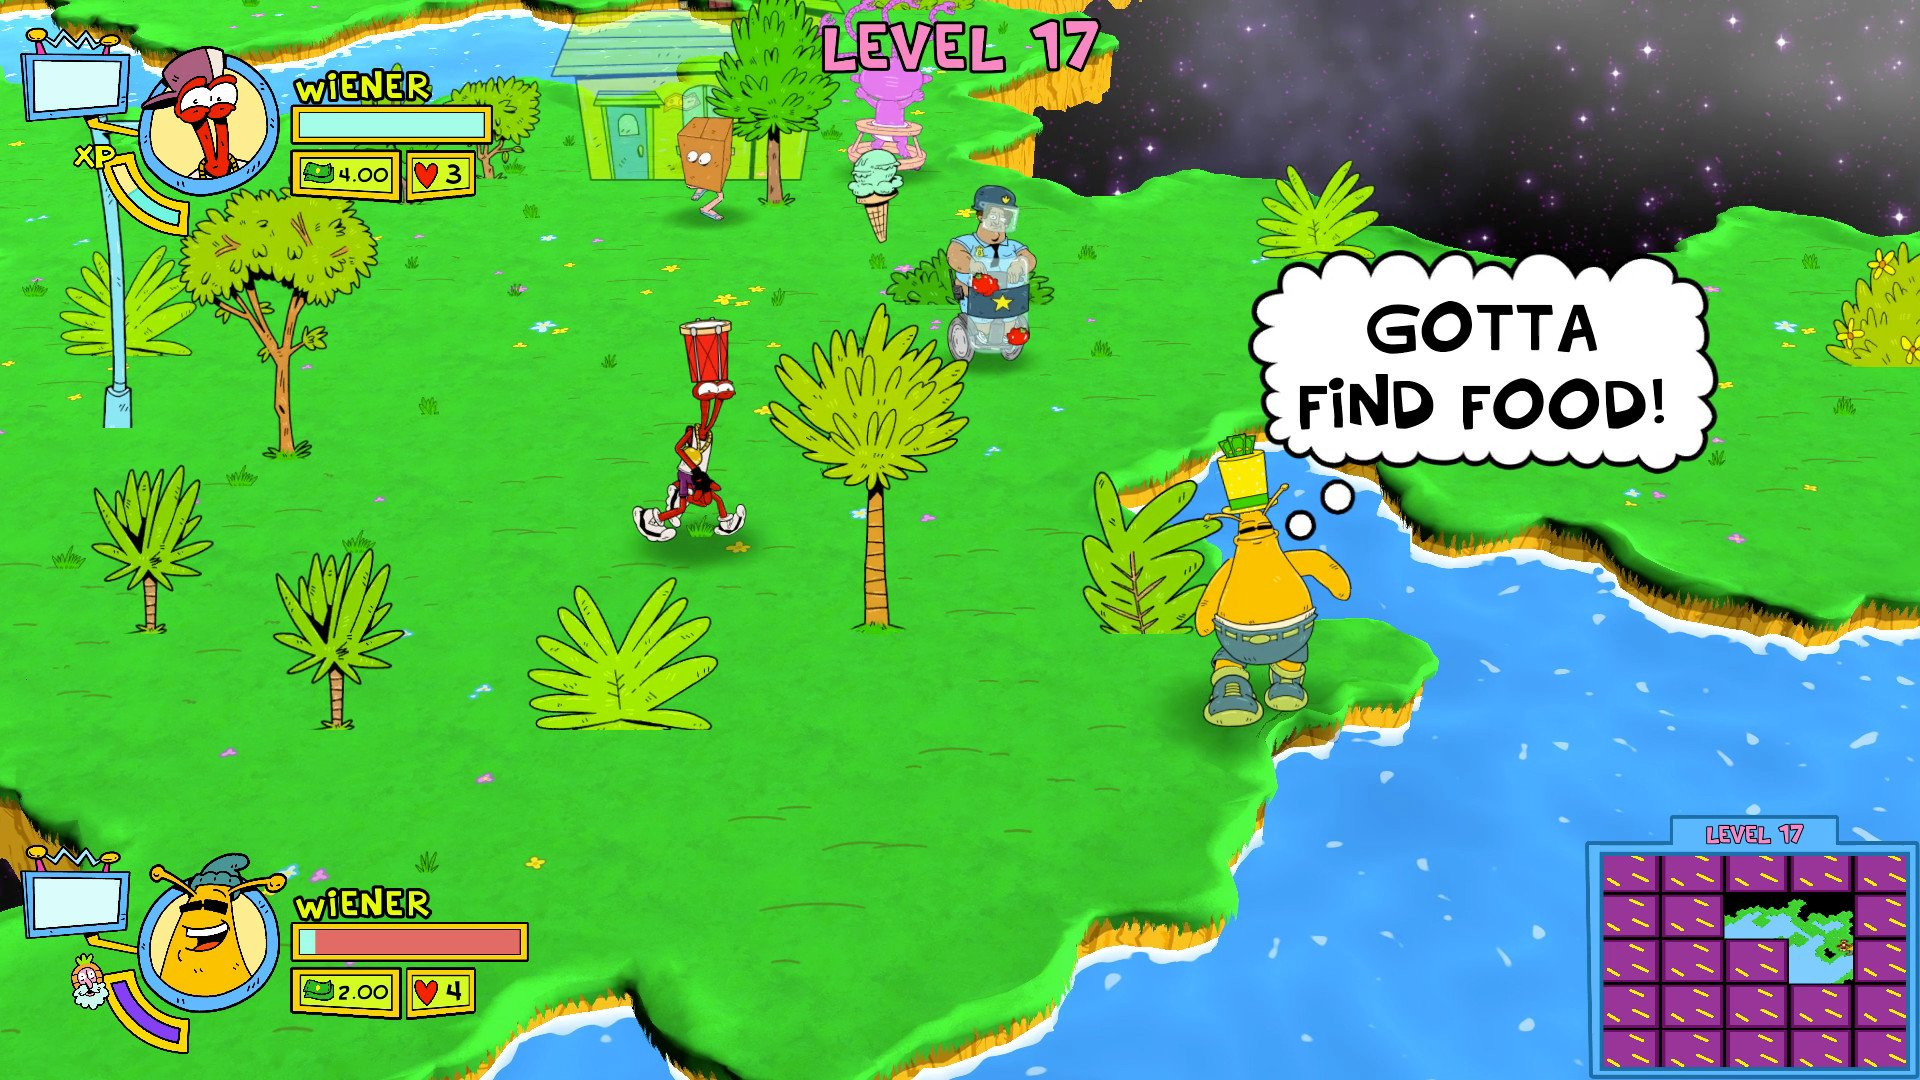 ToeJam & Earl: Back in the Groove! release date